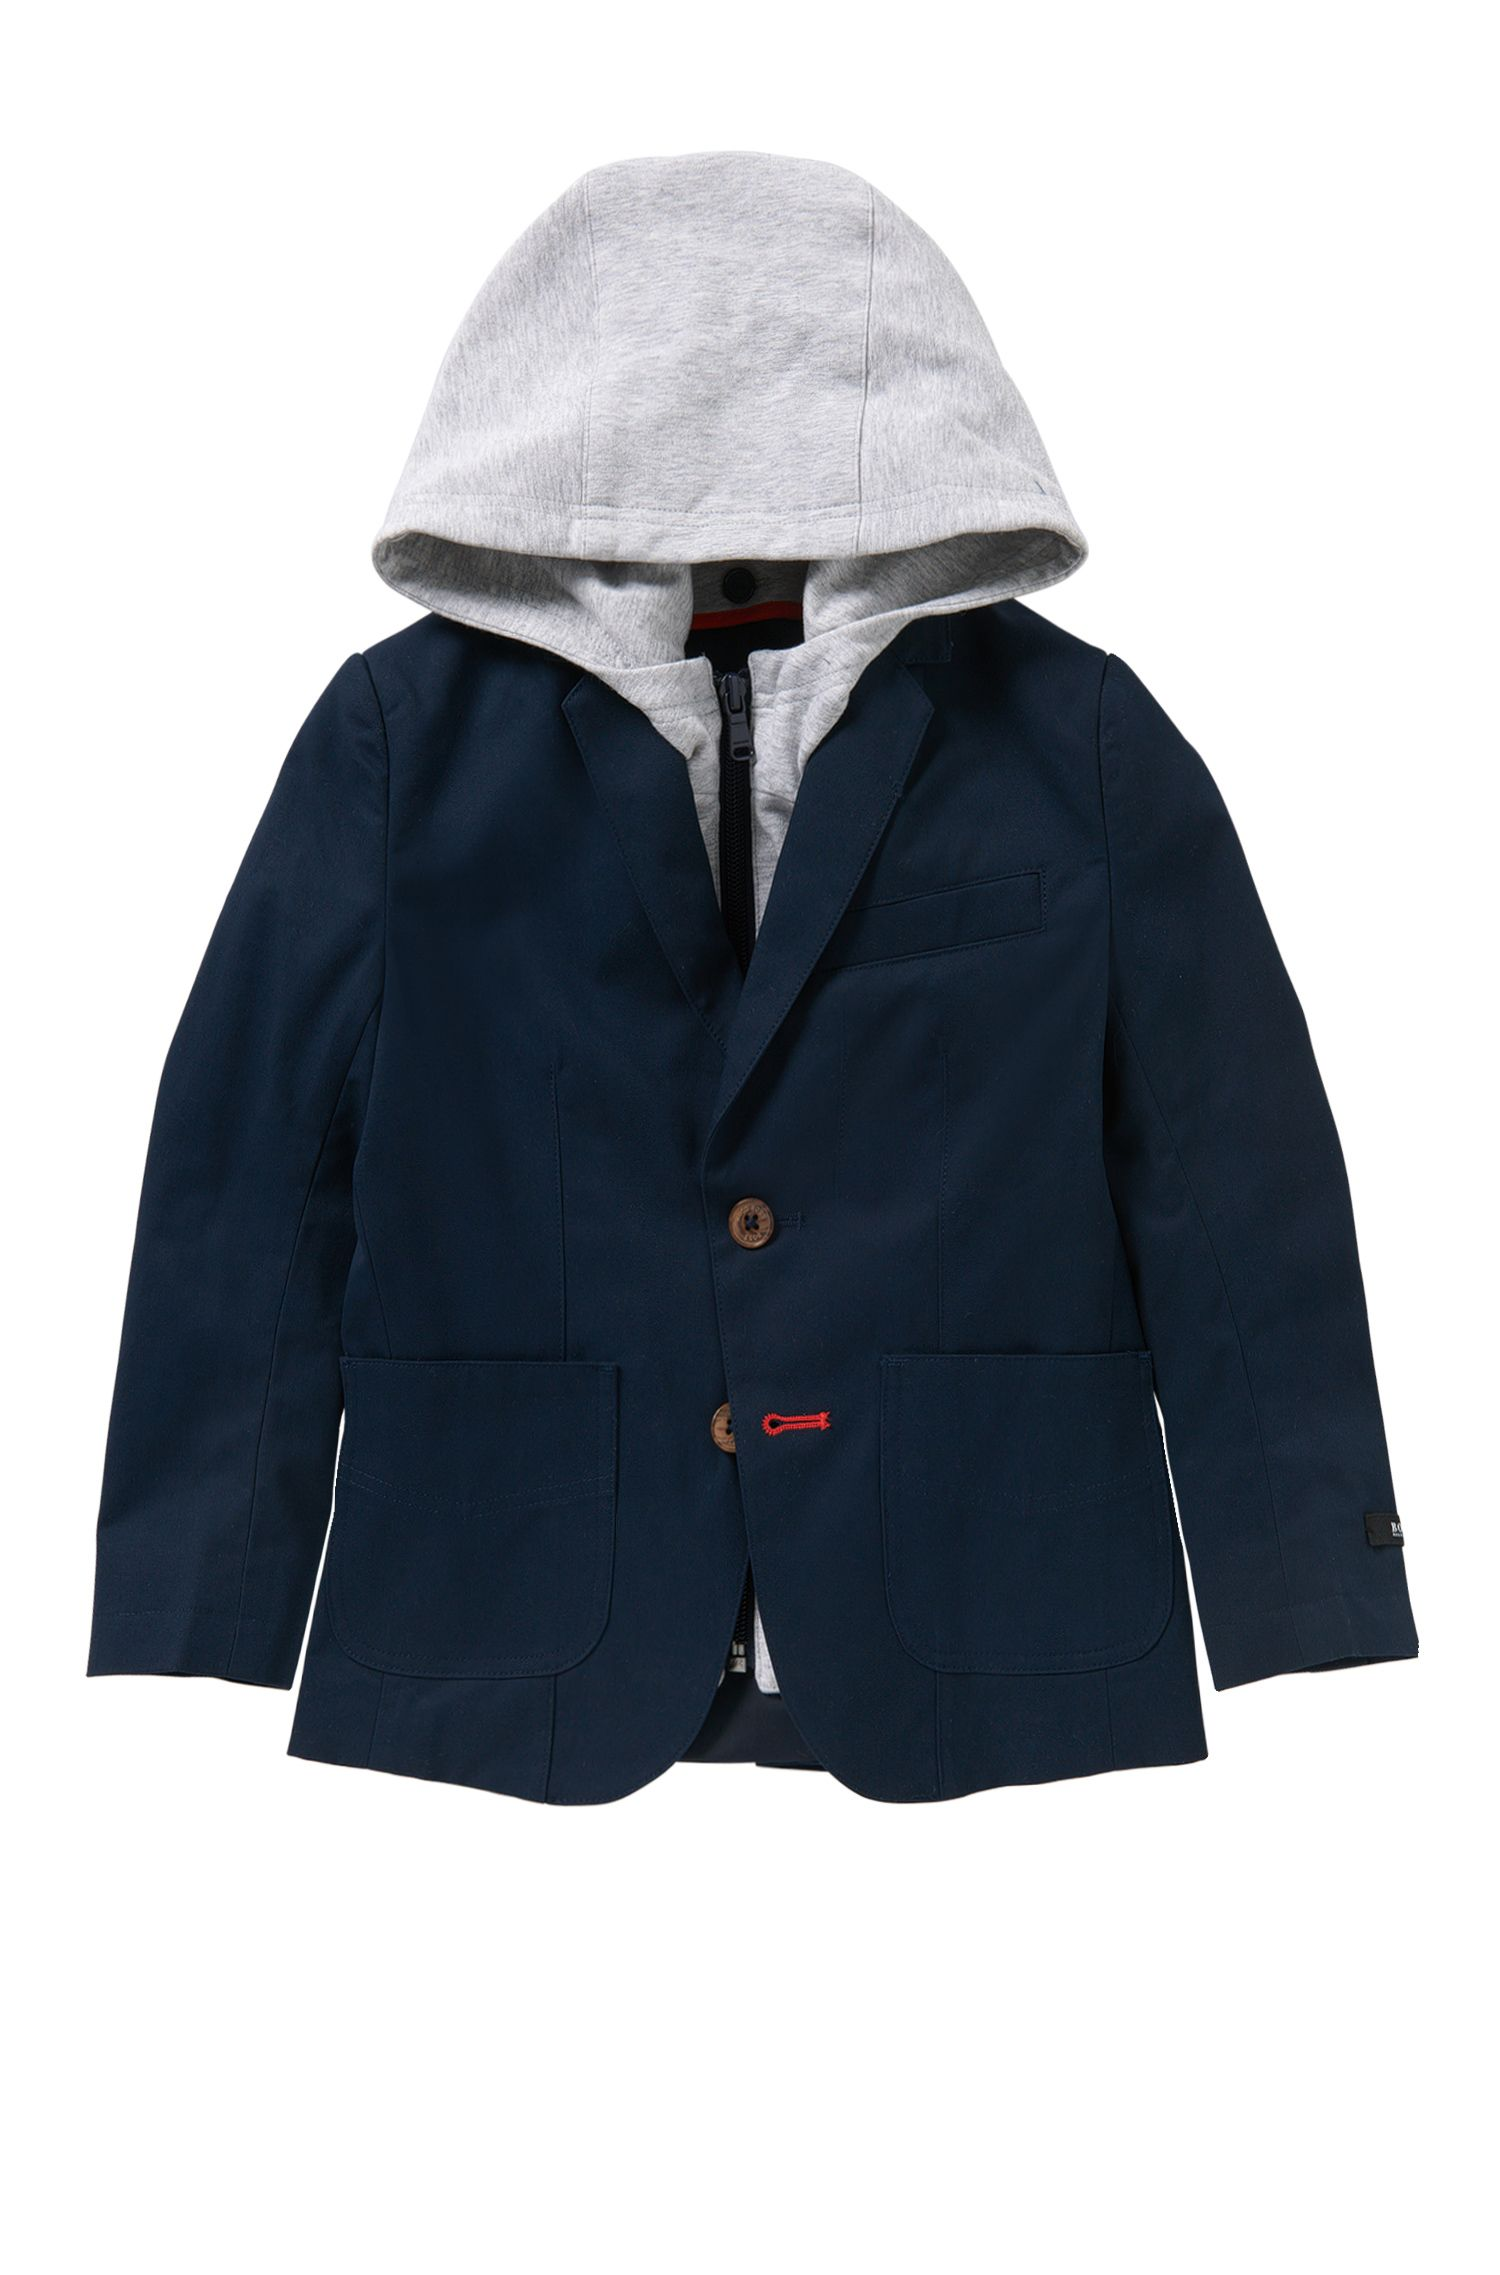 'J26276' | Boys Suit Jacket, Removable Hood